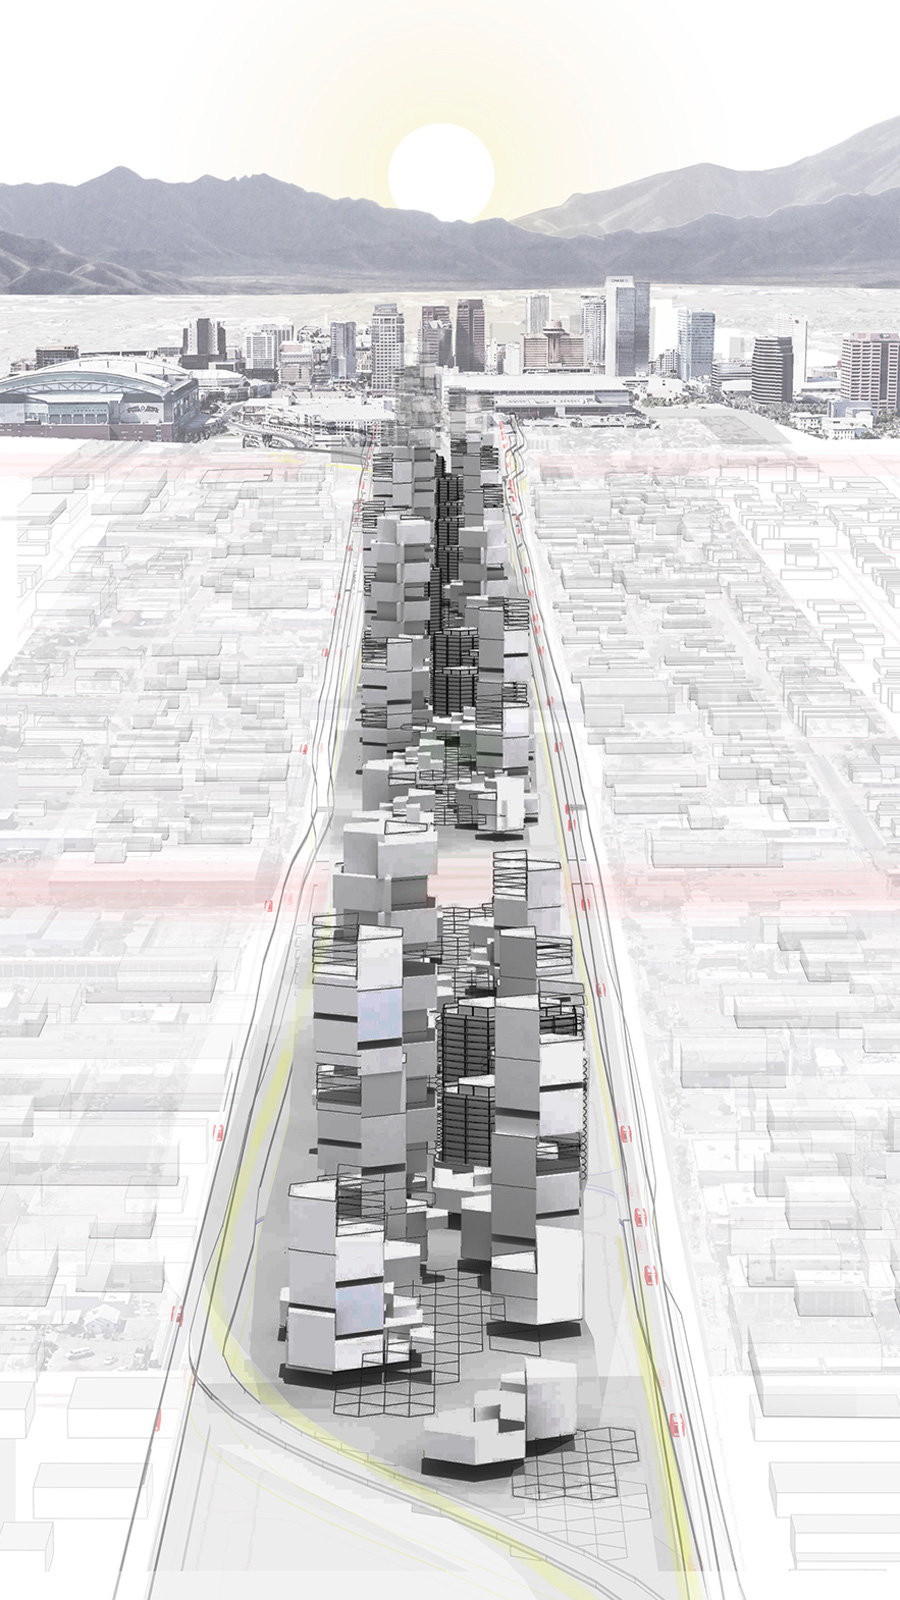 Perspective of an evolving infill corridor infrastructure as the new entry to downtown Phoenix by student Dellan Raish